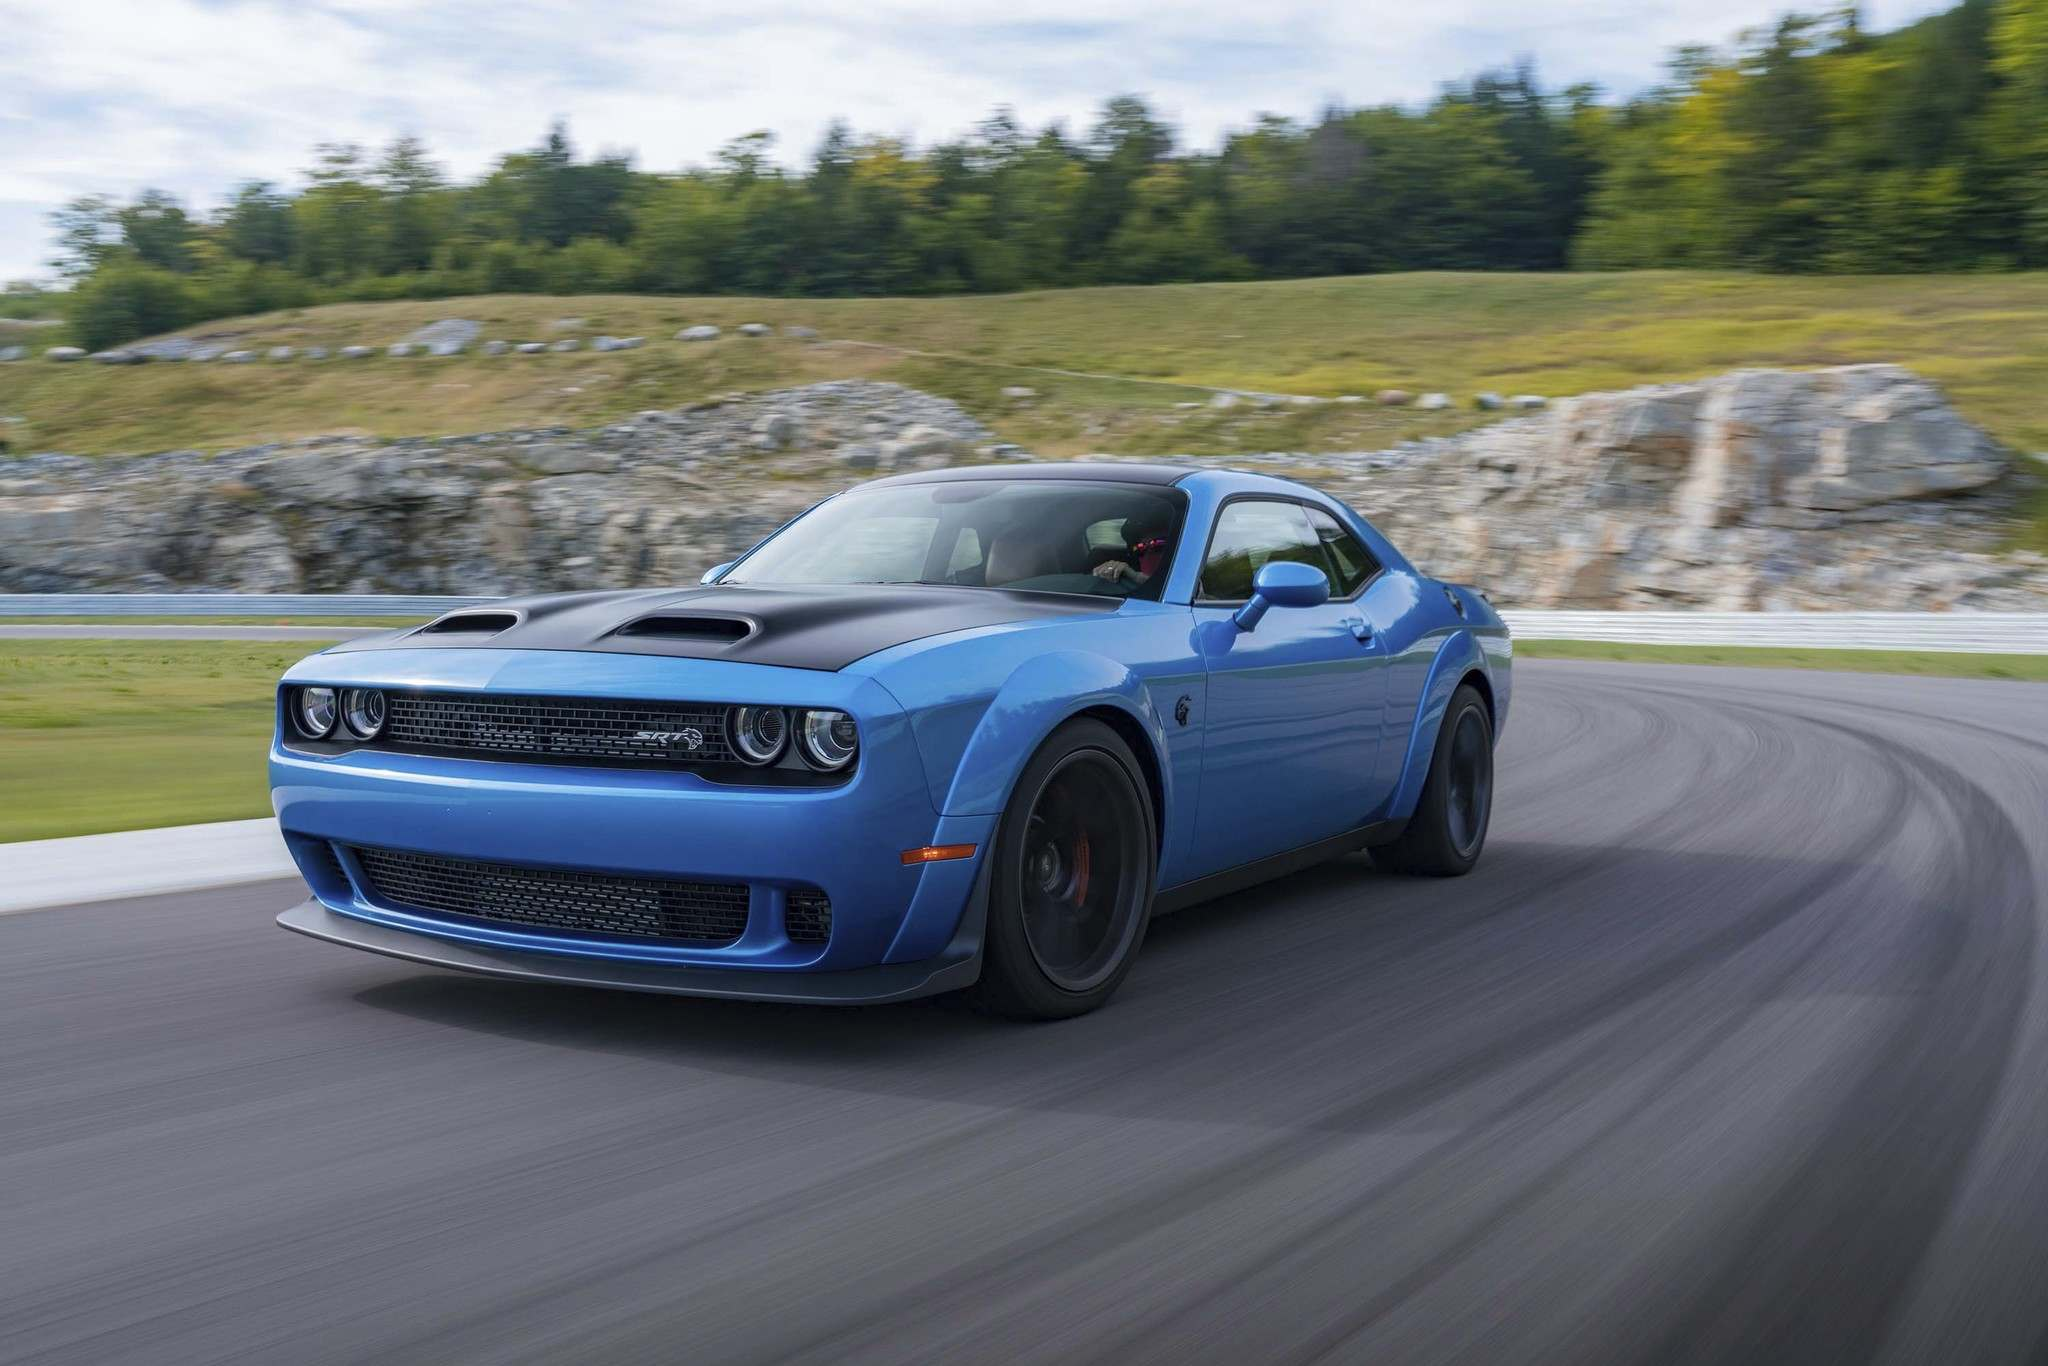 Automotive News :: High-powered Hellcat Redeye engine a model of innovation